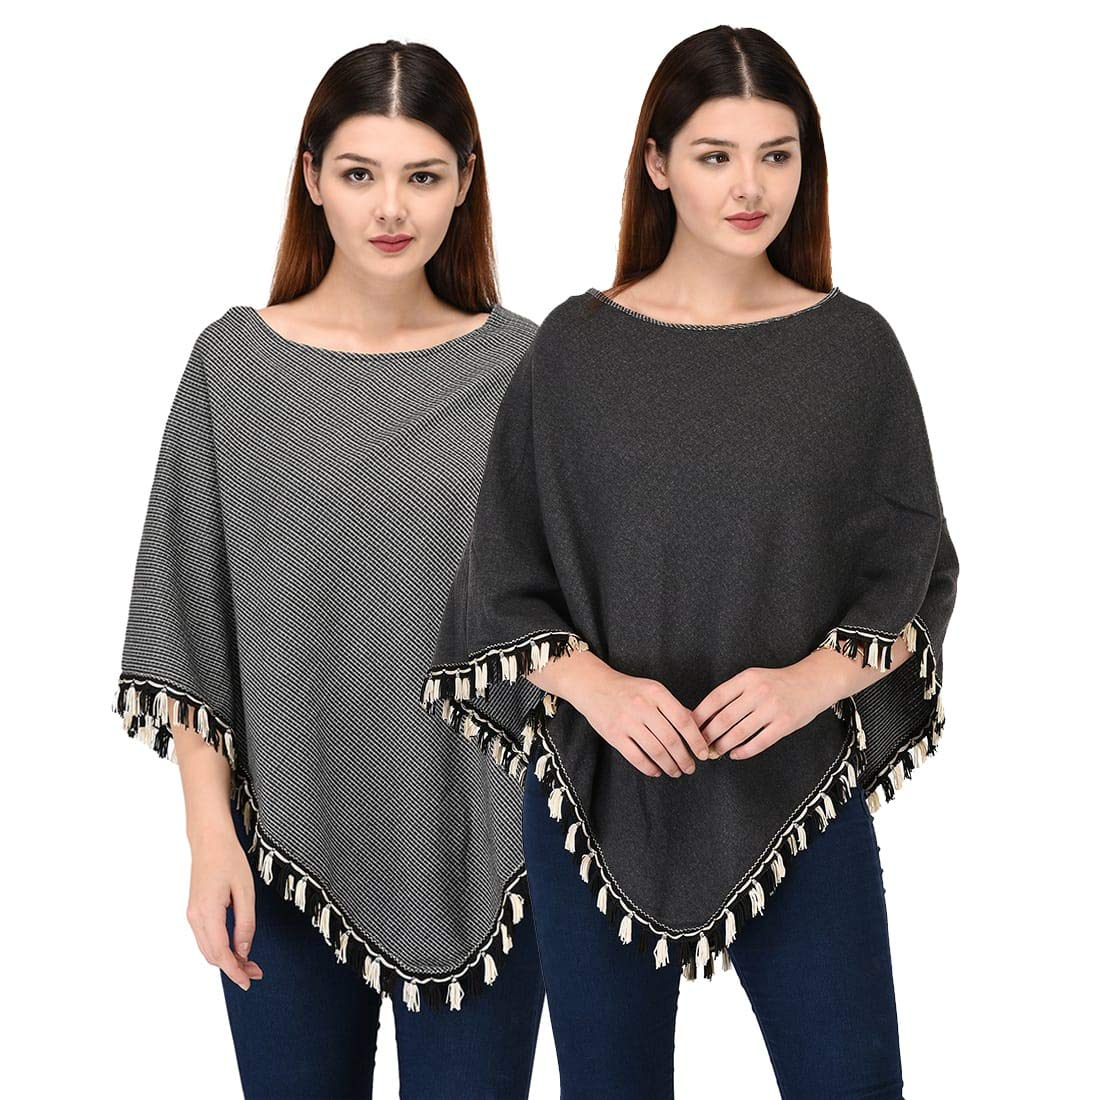 SKiDlers Women's Elegant Knitted Shawl Reversible Poncho with Fringed V-Neck Jacquard Sweater Pullover Cape Gifts for Women(Pack of 1)